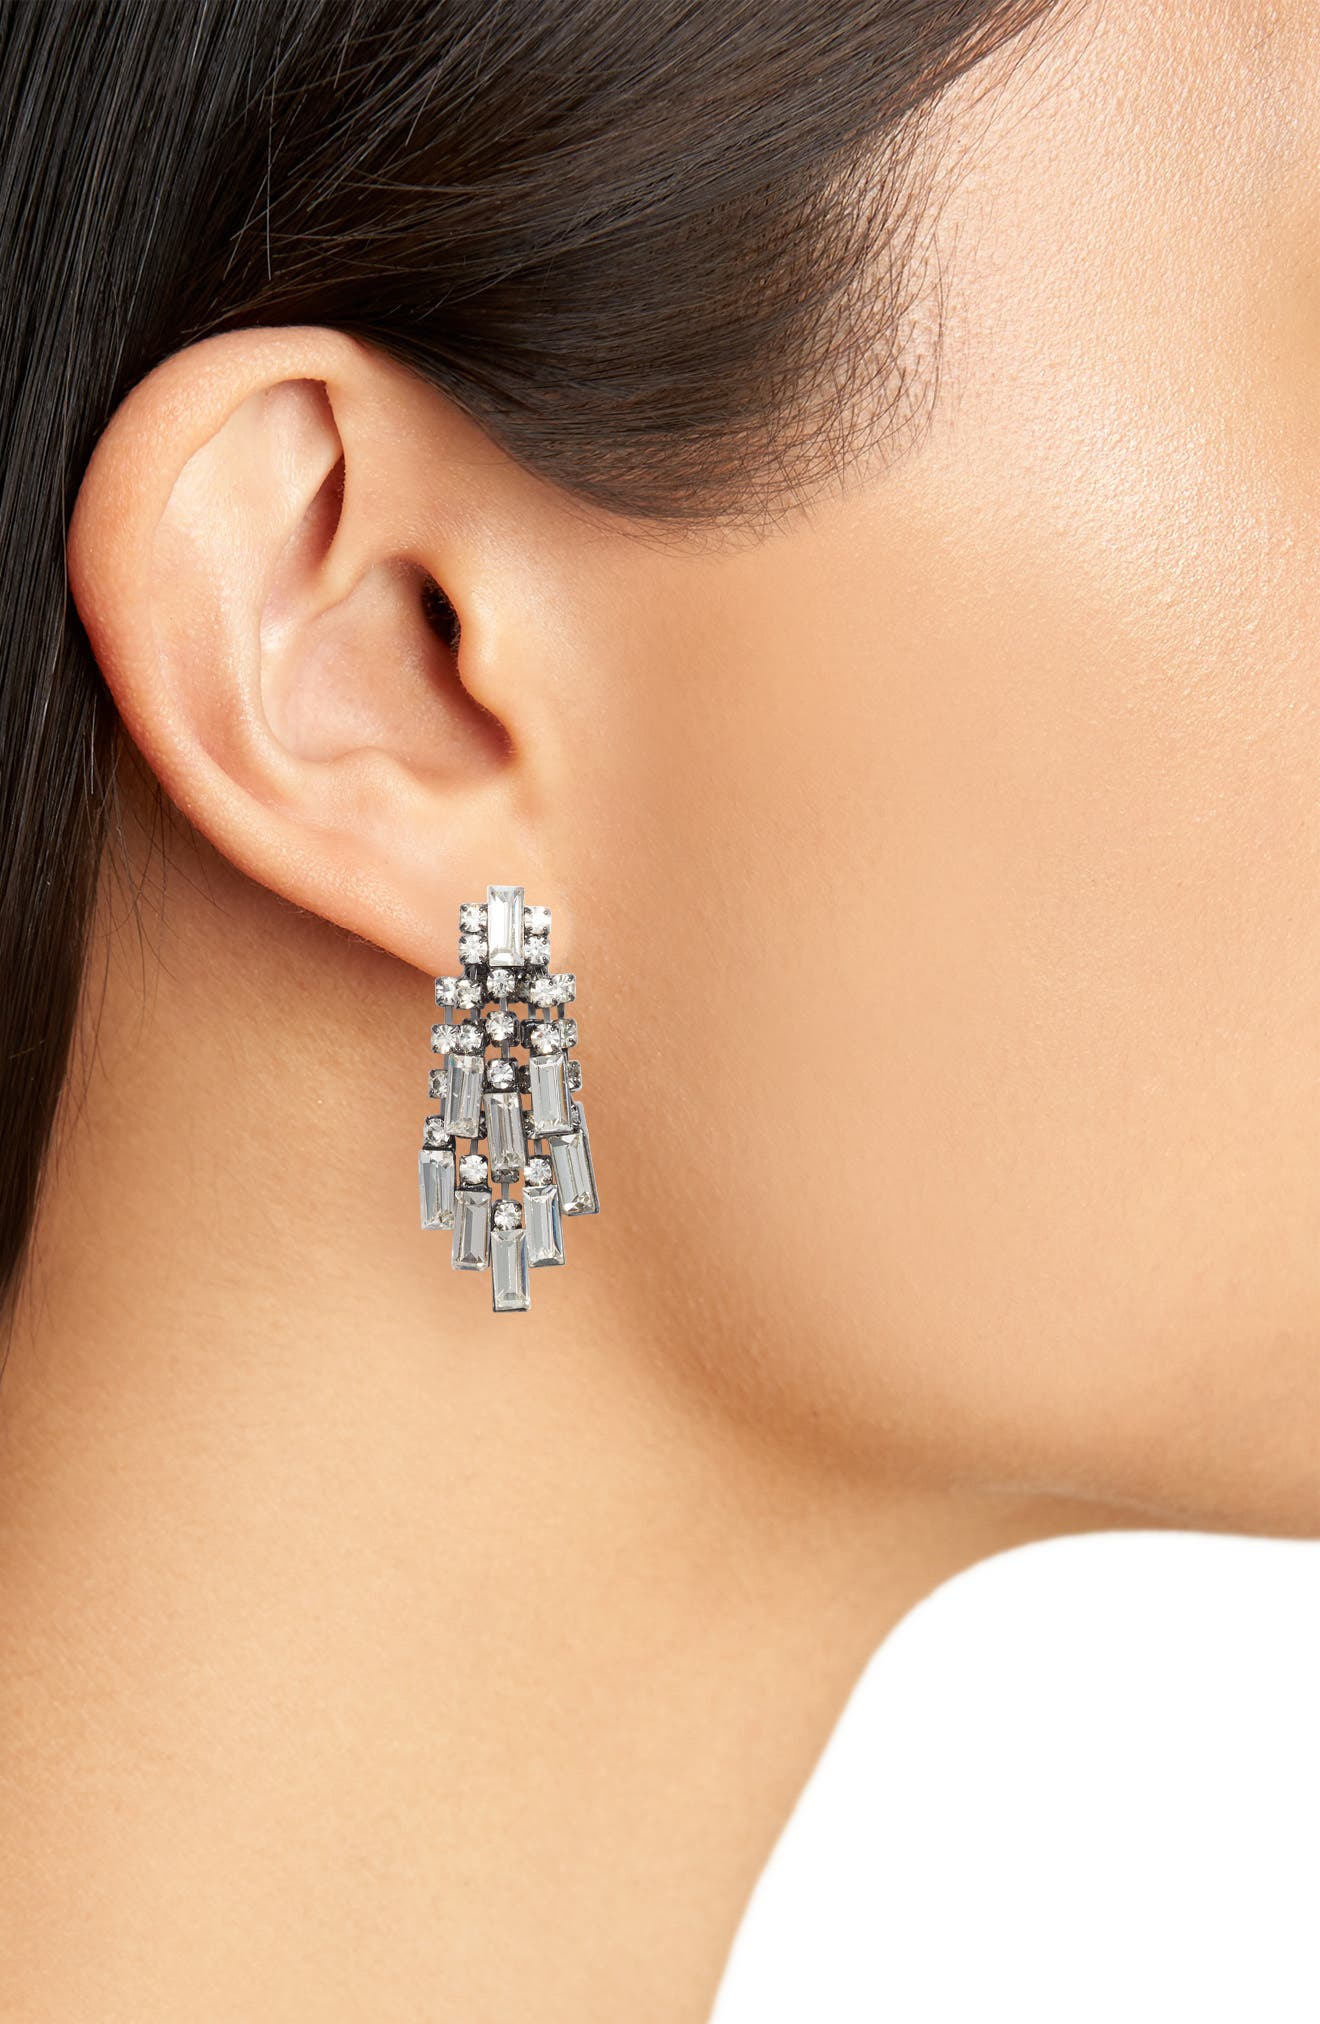 Crystal Baguette Earrings,                             Alternate thumbnail 2, color,                             Gunmetal/ Crystal